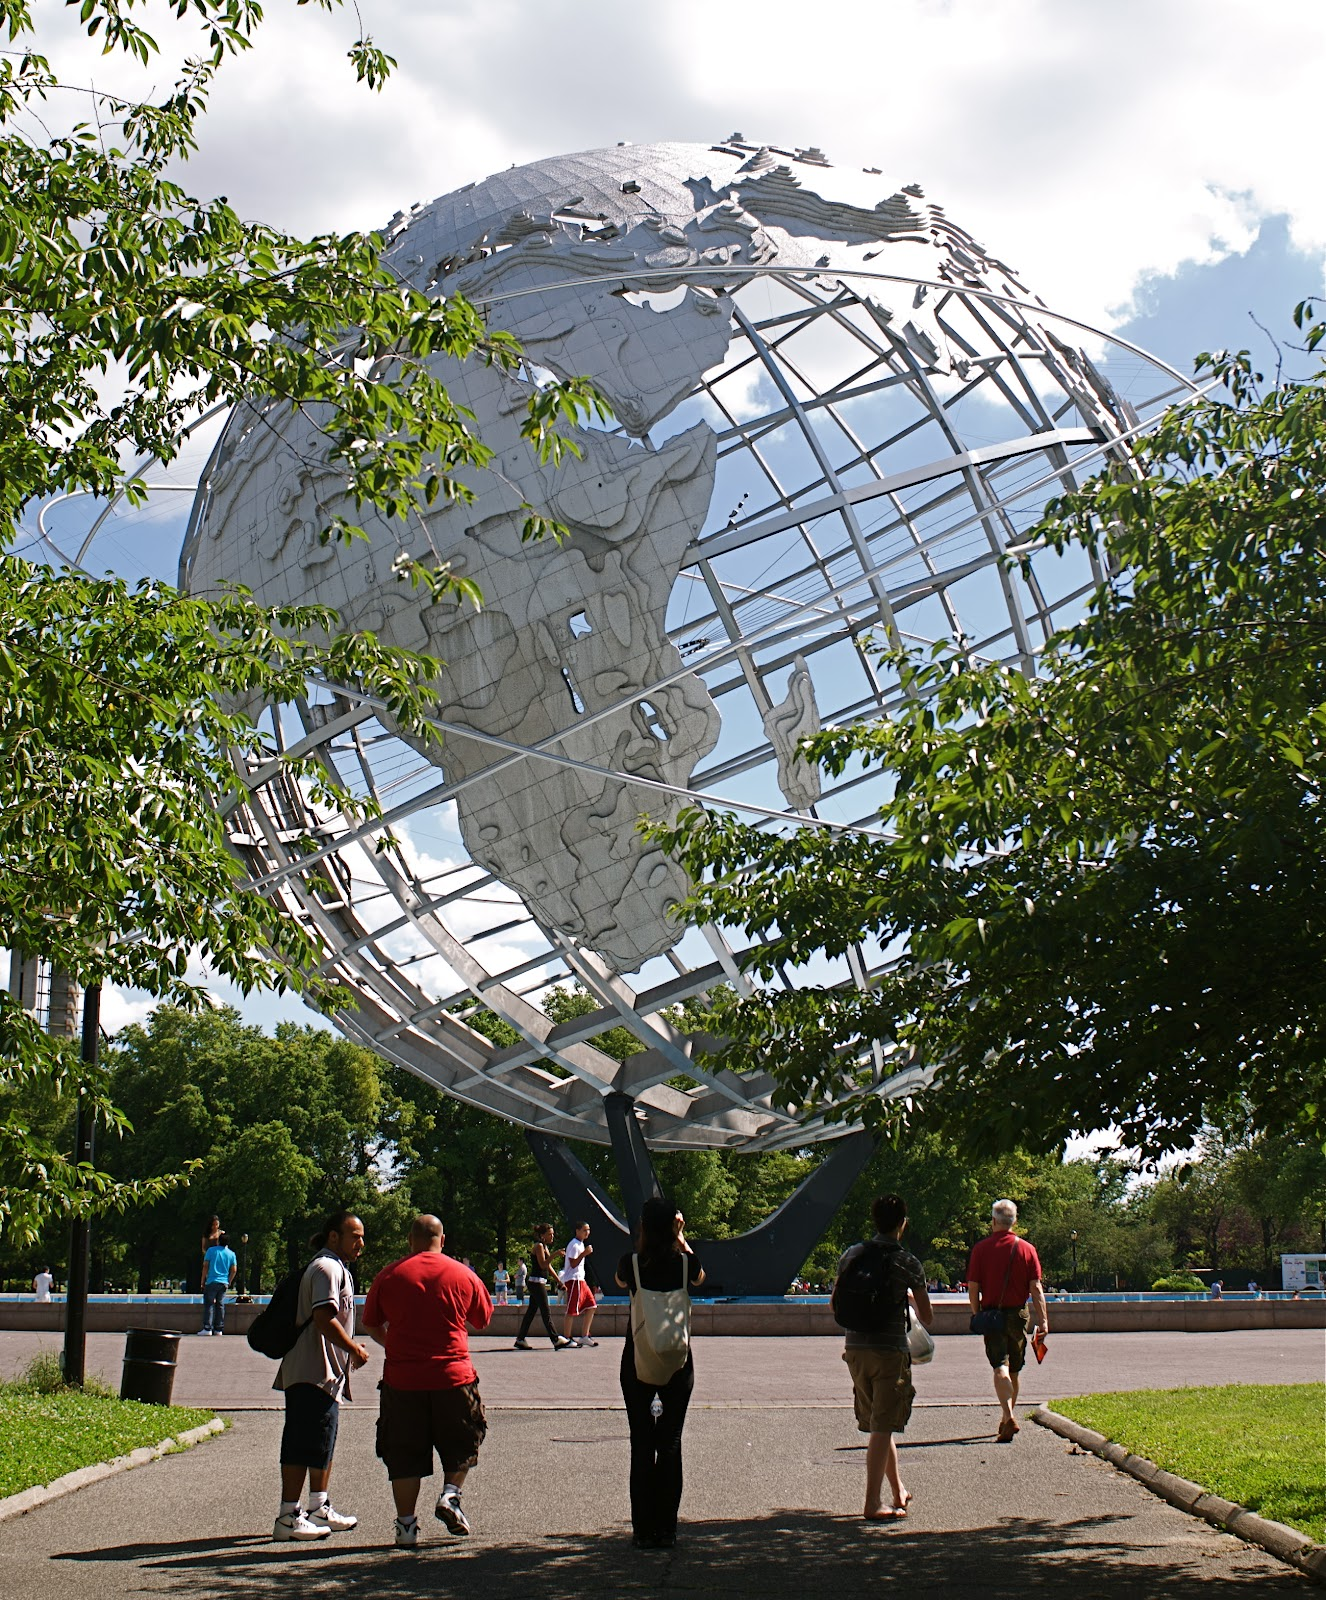 Park Meadows Vision Home: NYC ♥ NYC: The Unisphere Of Flushing Meadows